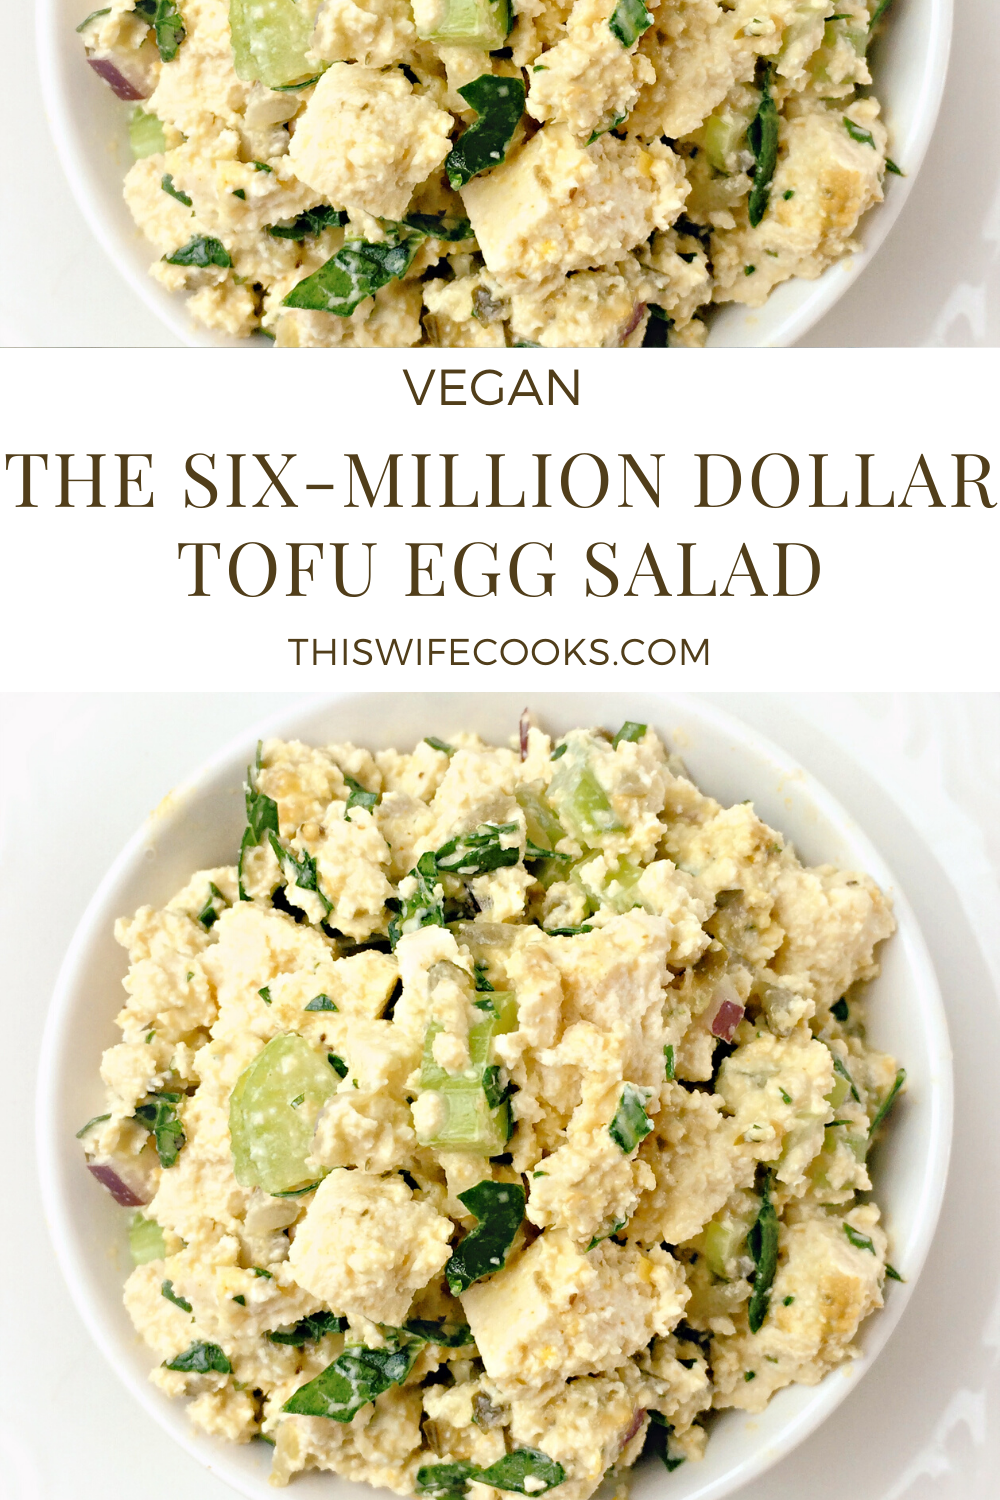 The Six-Million Dollar Tofu Egg Salad! - This is the preparation method as it appears in the book Mastering the Art of Vegan Cooking | thiswifecooks.com 